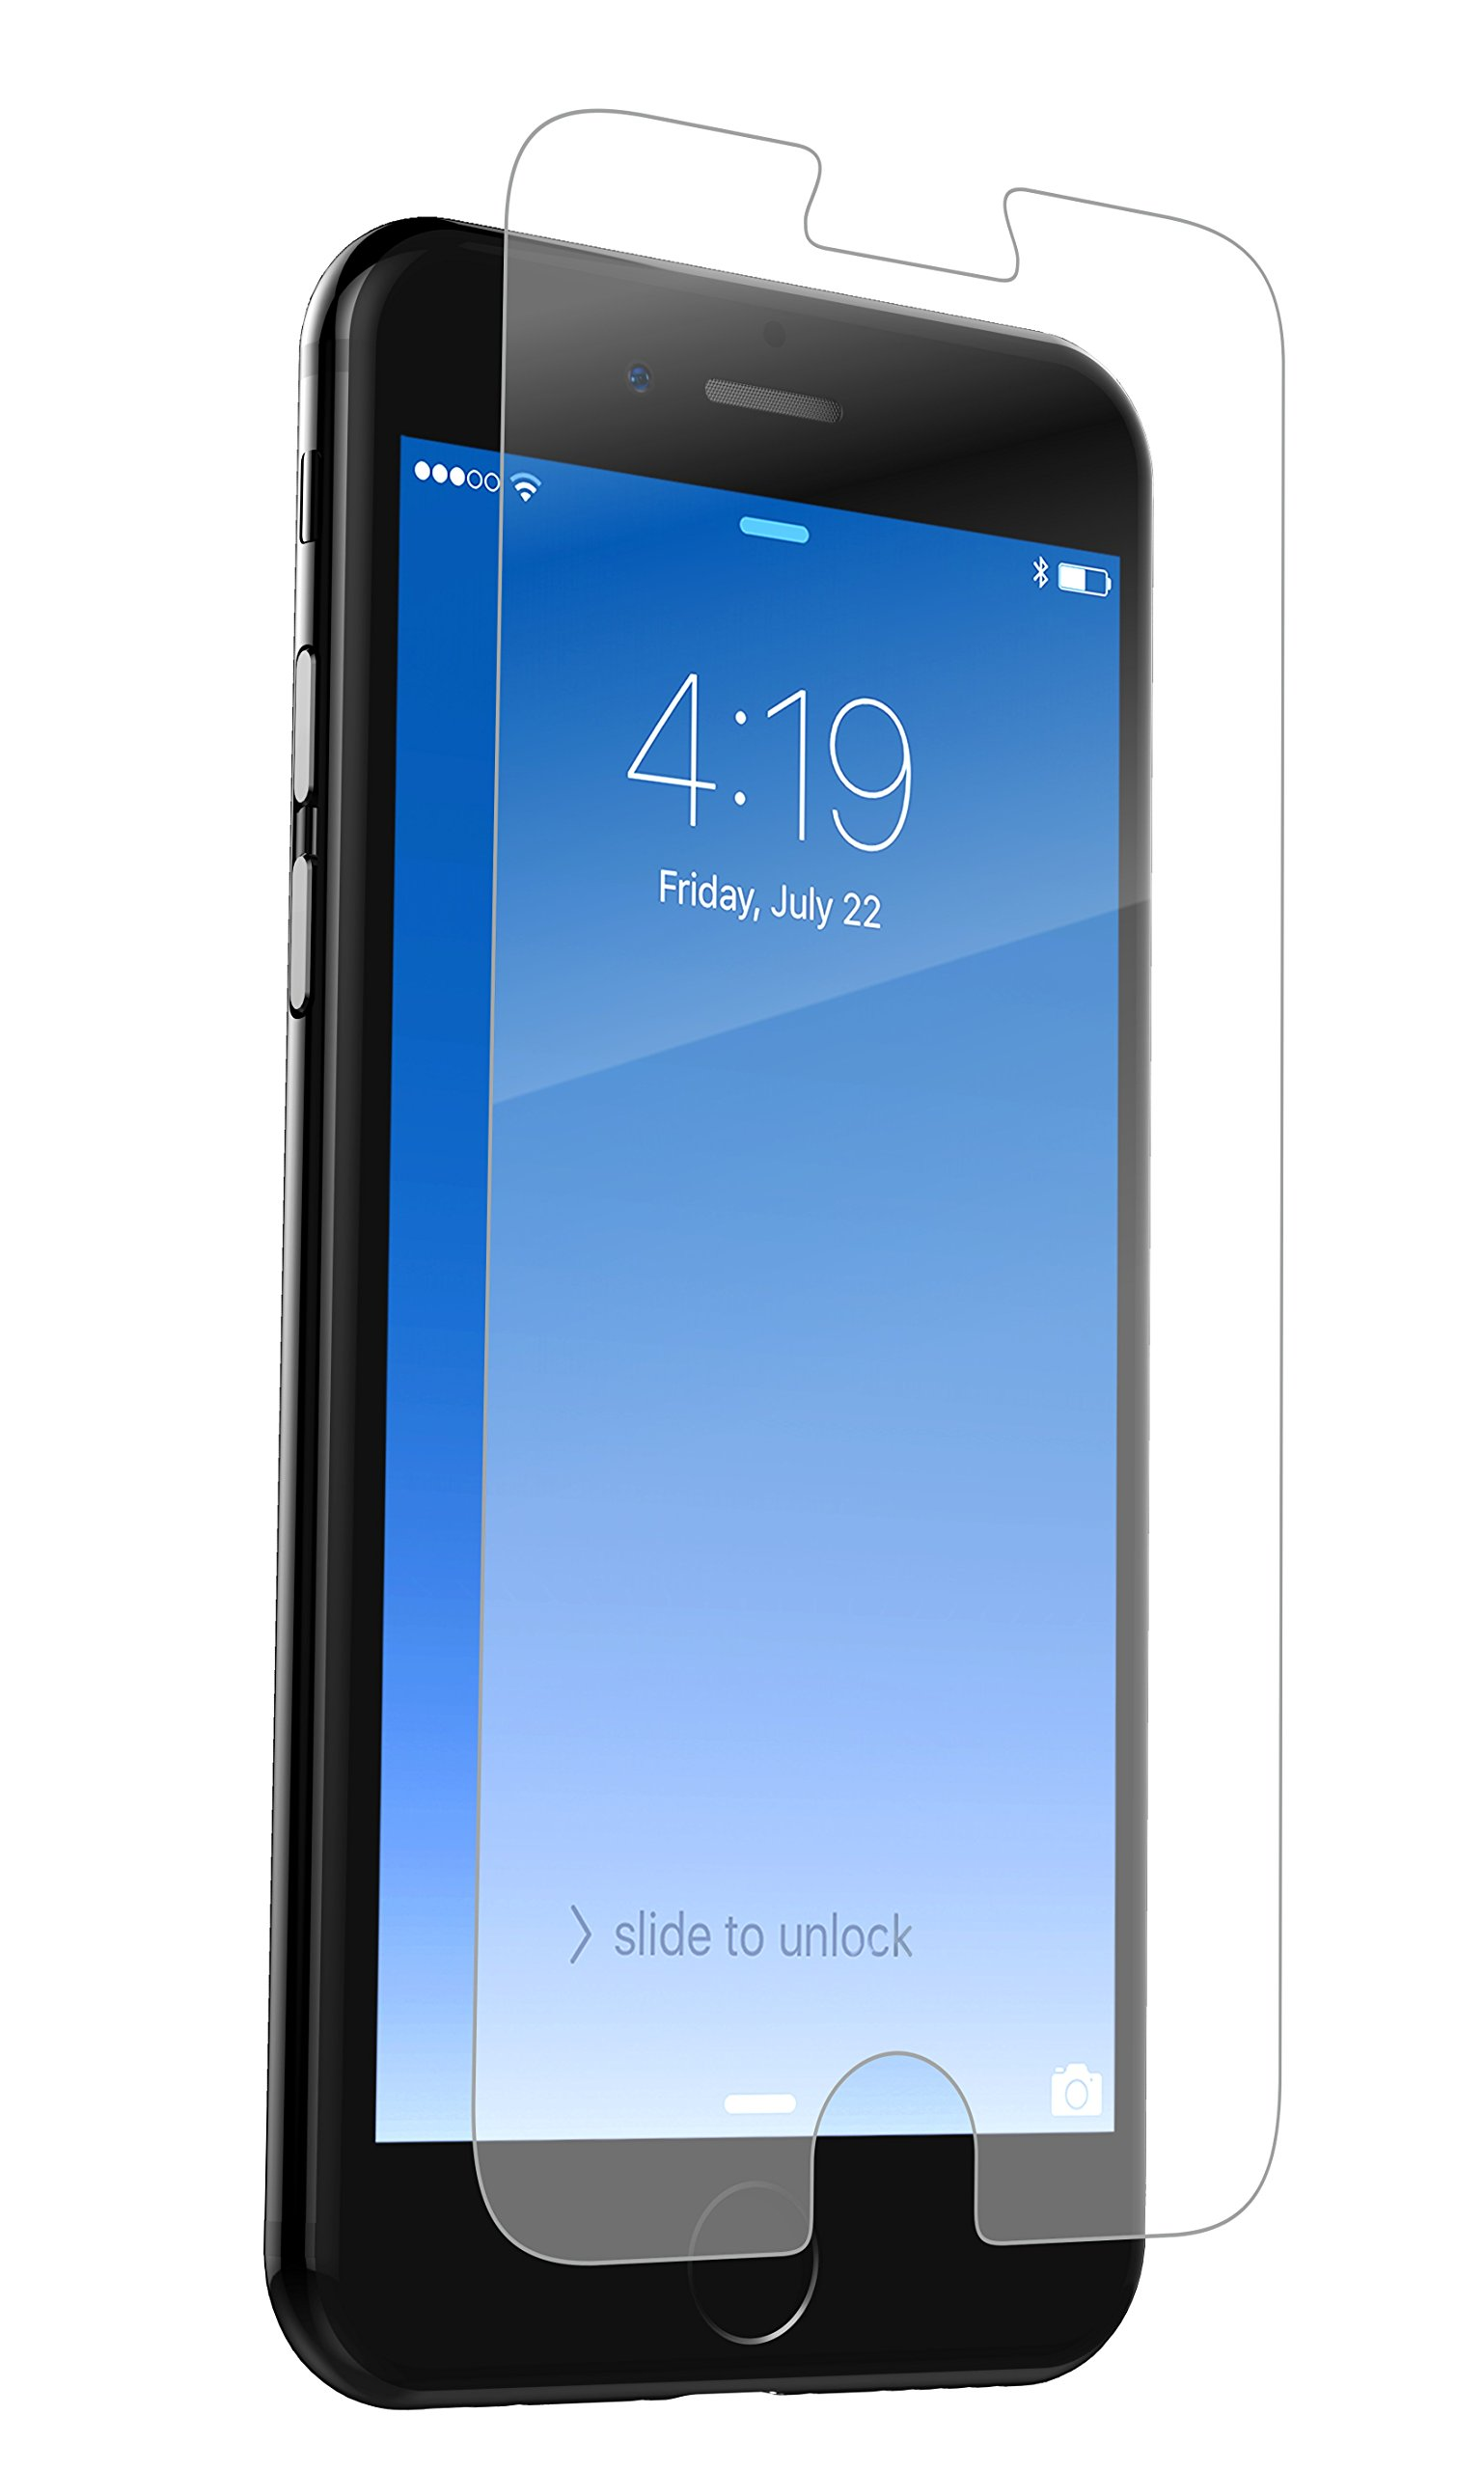 ZAGG InvisibleShield Glass+ Screen Protector - Made for Apple iPhone 8, iPhone 7, iPhone 6s, iPhone 6 - Extreme Impact and Scratch Protection - Seamless Touch Sensitivity - Clear by ZAGG